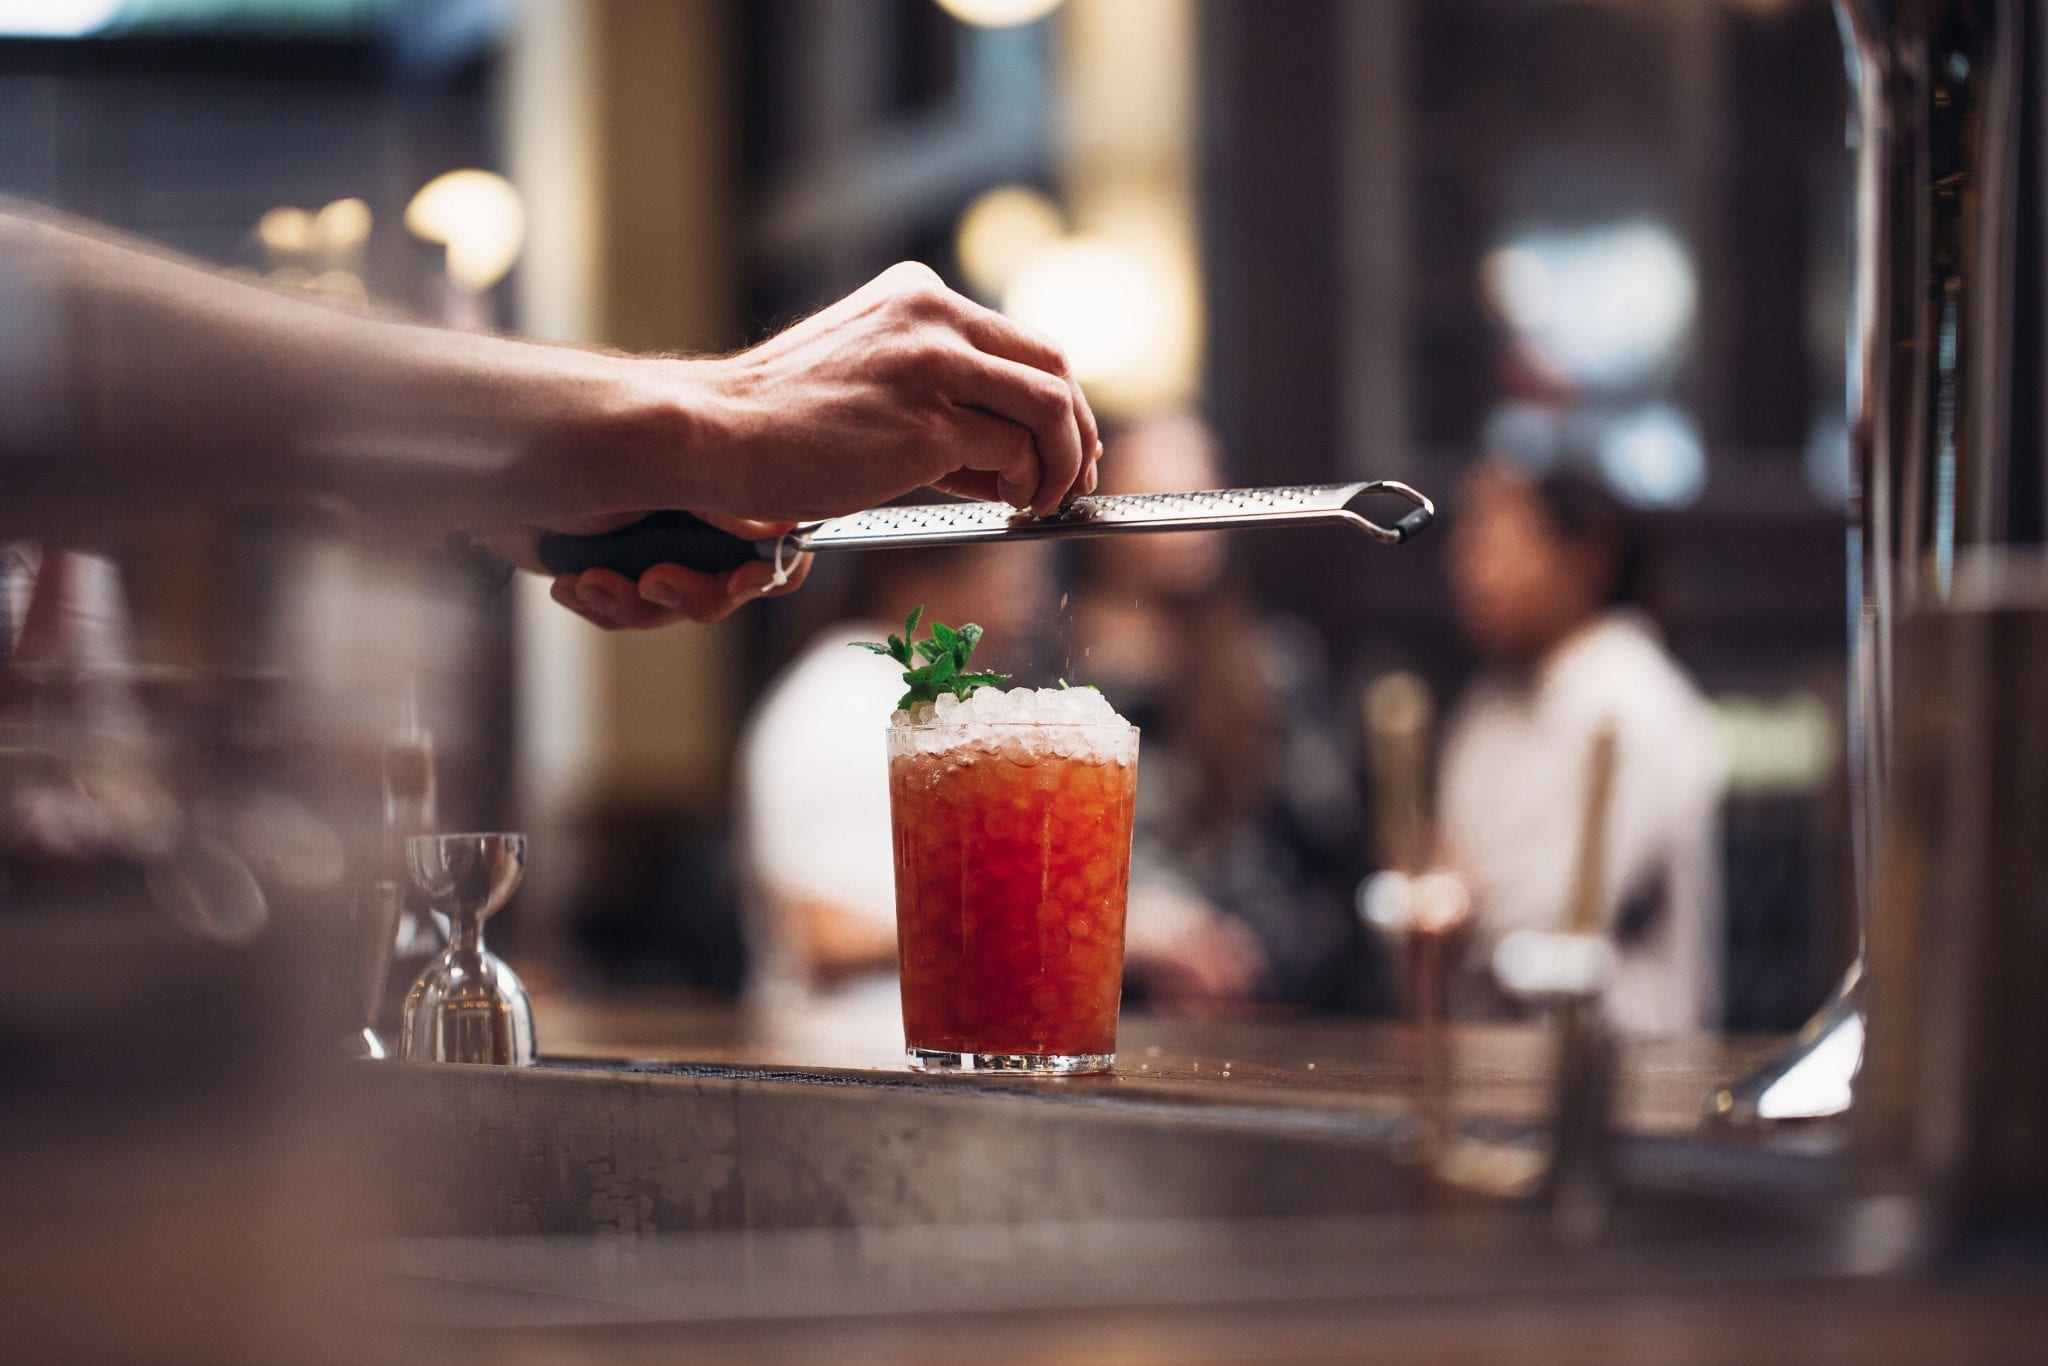 fruit cocktail on table topped with ice while a bartender grates ingredient over glass